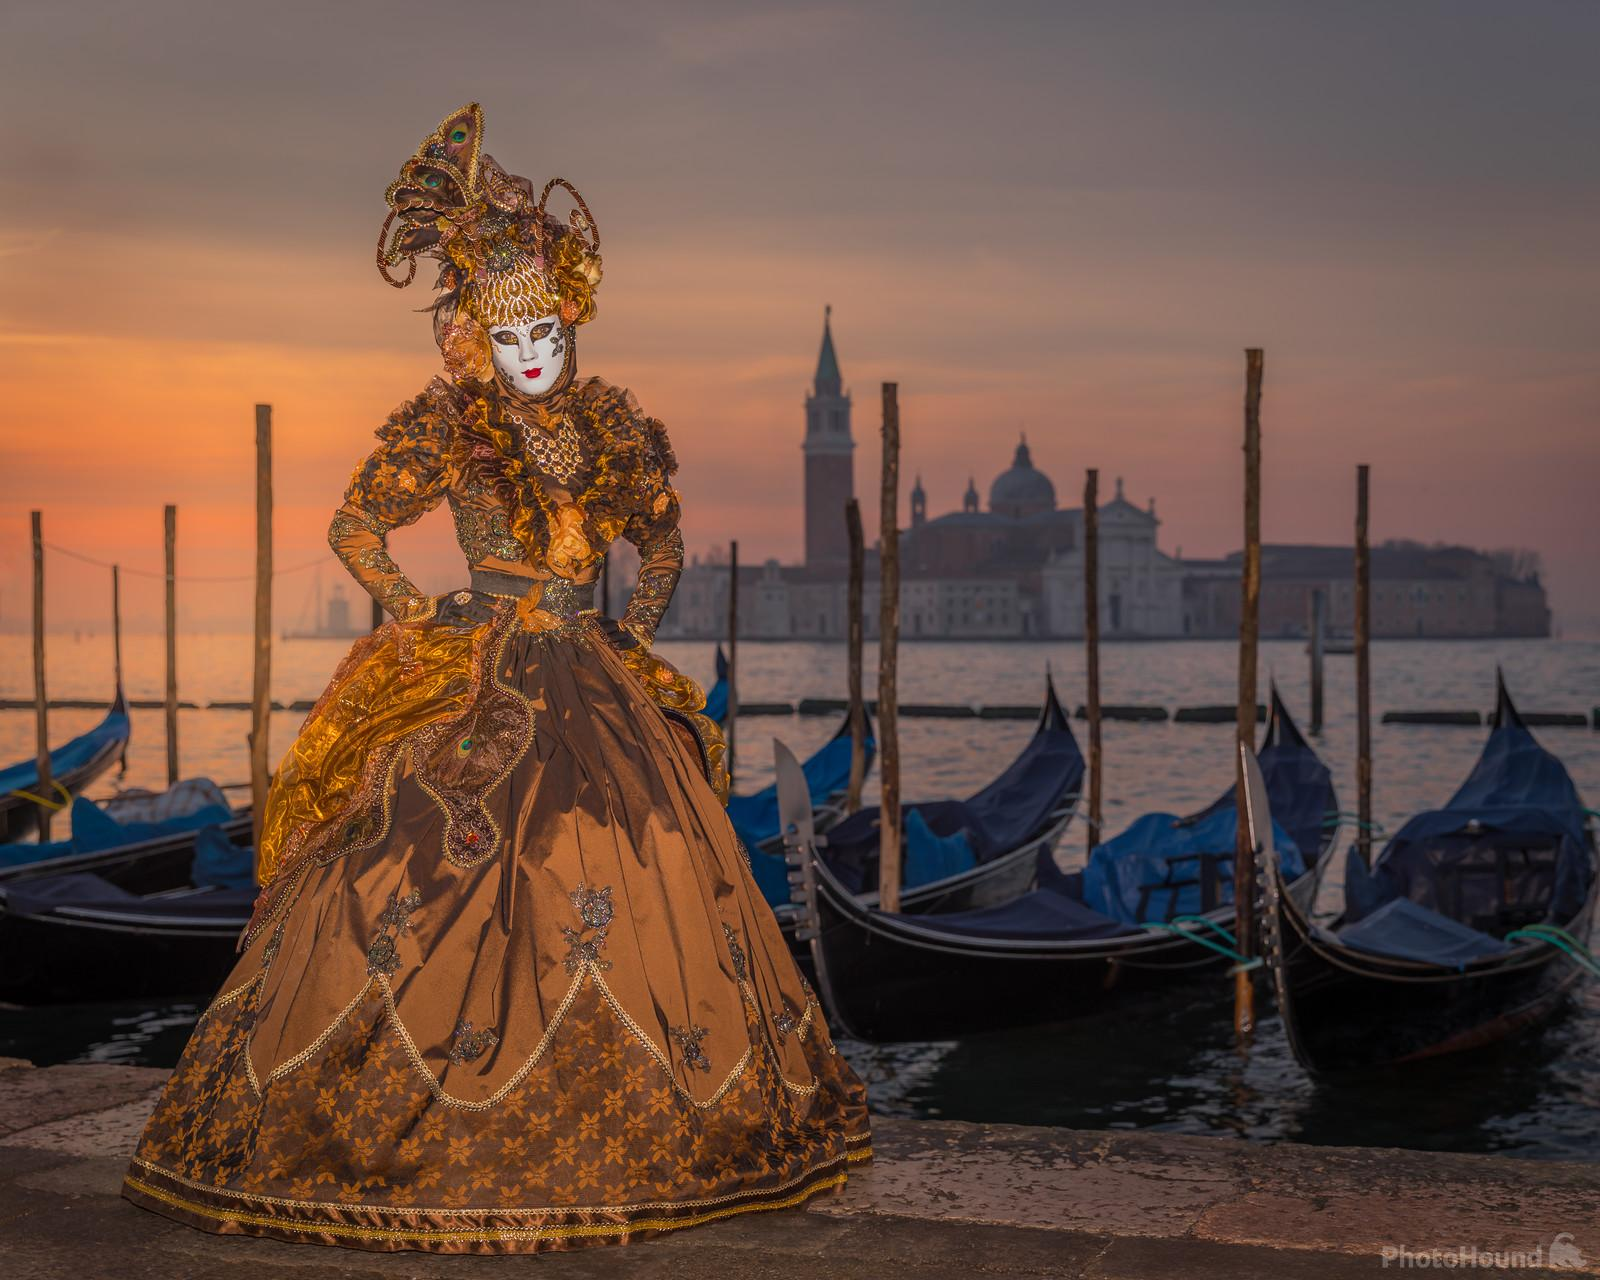 Early morning at the Venice Carnival